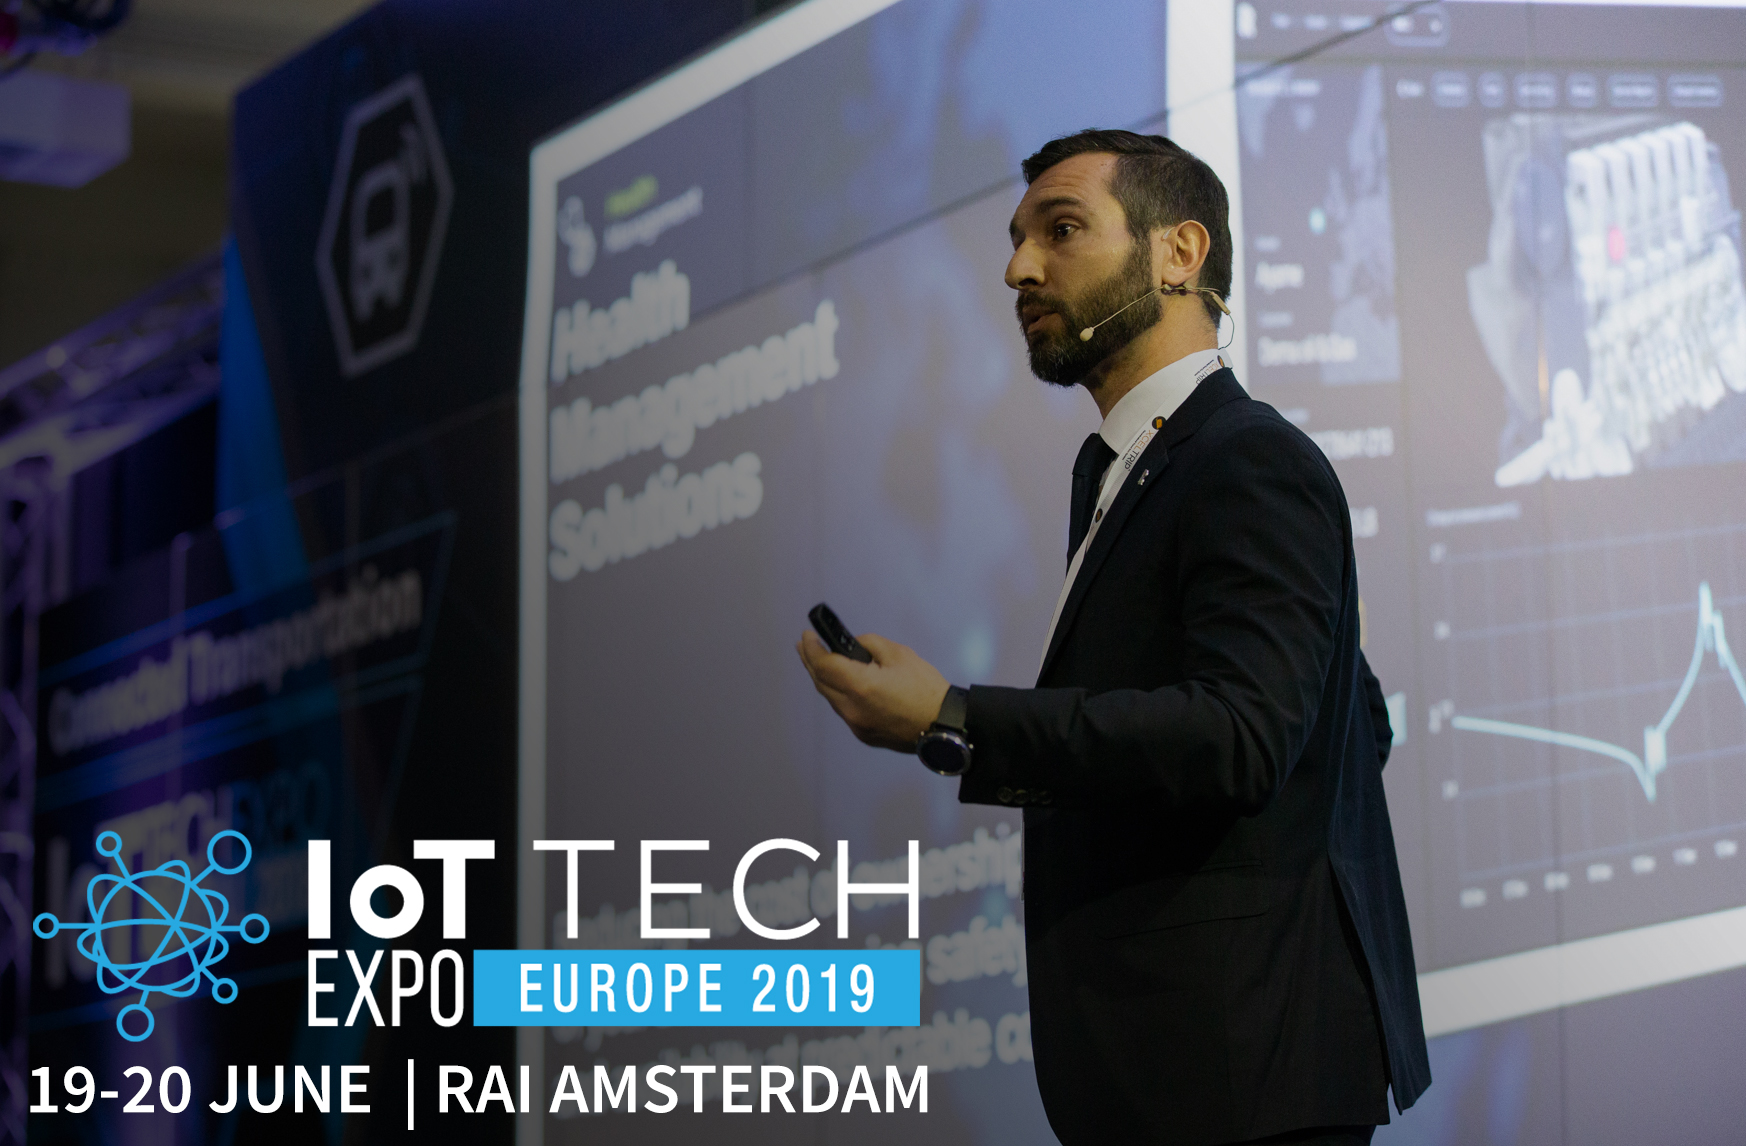 Hear industry leaders explore the future of Industrial IoT